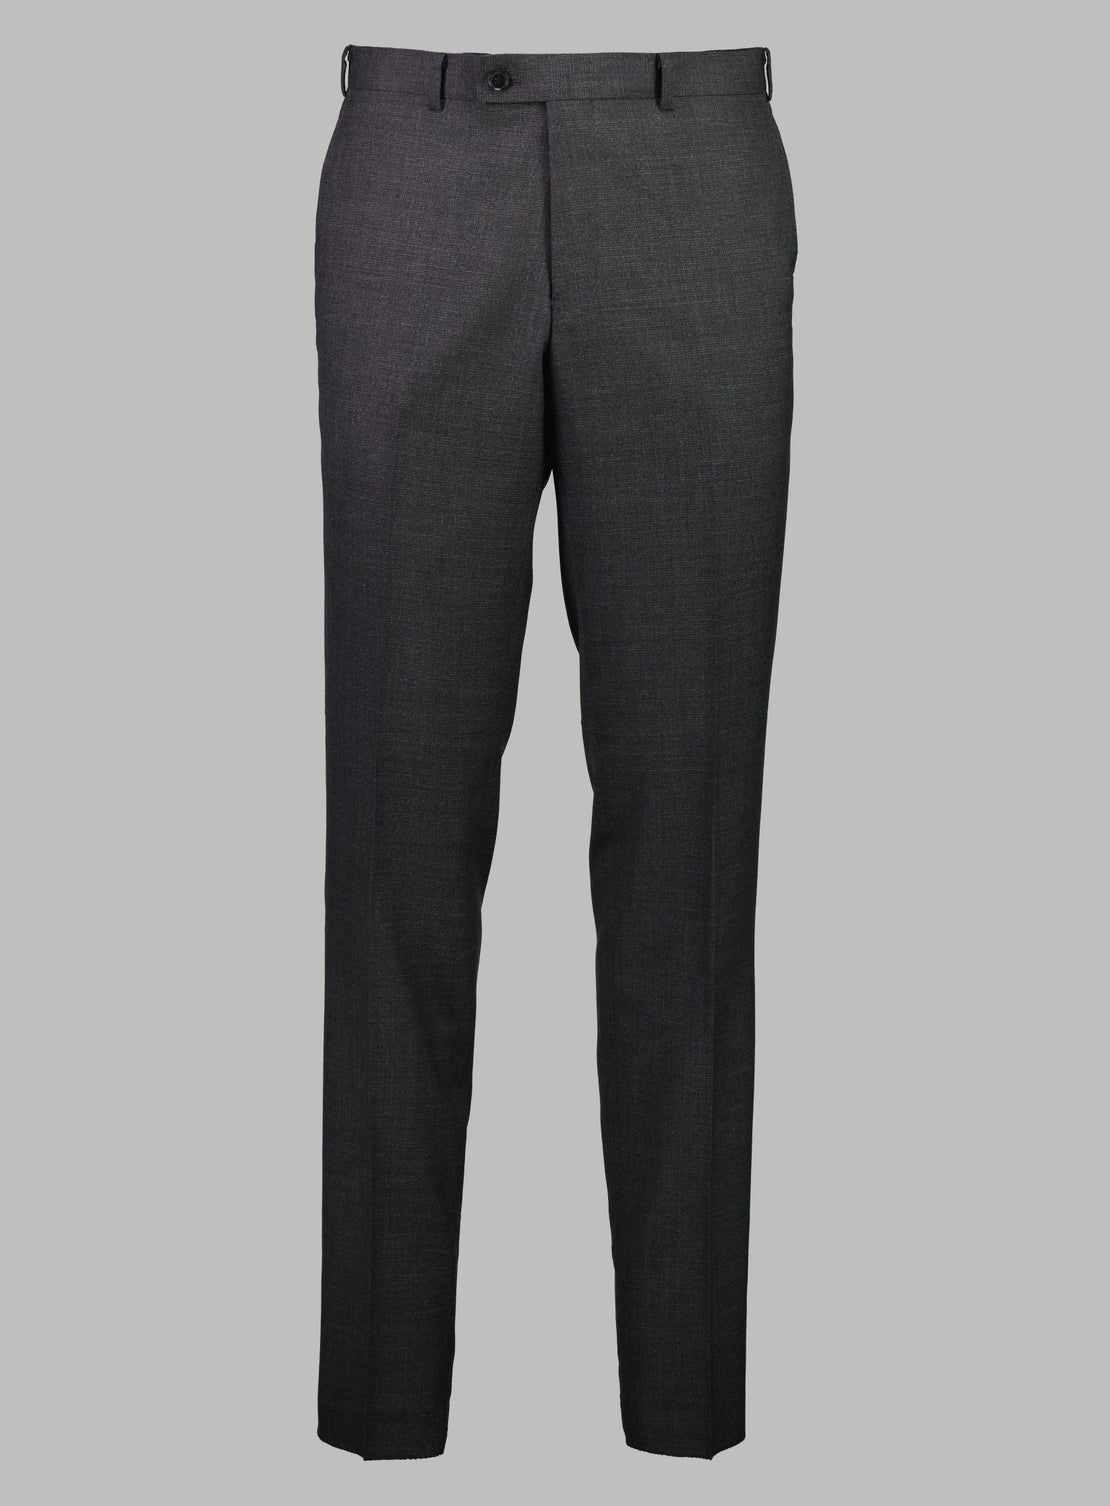 Tyrone Charcoal Textured Suit